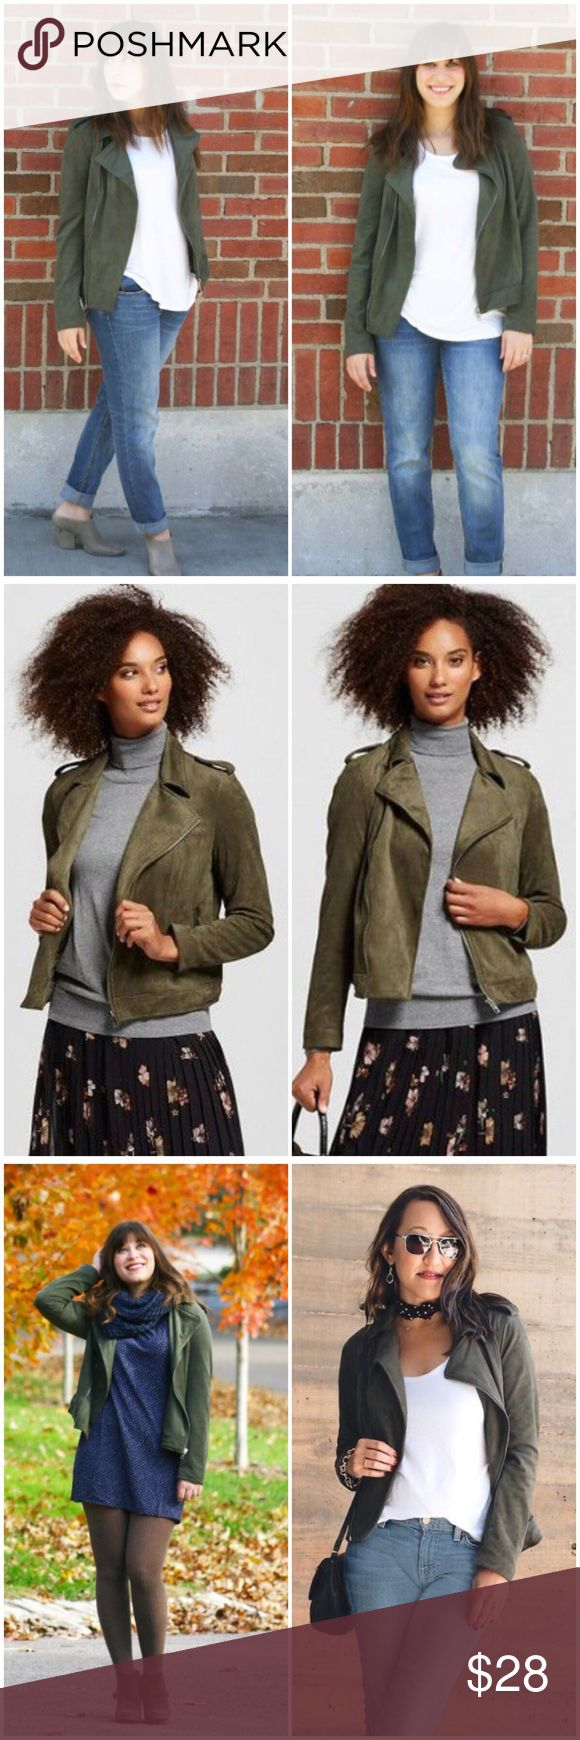 🦋HP🦋 Who What Wear Green Faux Suede Moto Jacket New Womens Who What Wear by Target Green Faux Suede Moto Mod Jacket NWOT  • Size L • New without tags • Green faux suede zip Moto jacket • 15.5 inch shoulders  • 21 inch bust  • 22.5 inch length  • 17.5 inch sleeve inseam • 87% polyester 13% spandex • Fully lined • Two zippered pockets • Jacket is new without tags, one pin point imperfection on the back of the right sleeve is pictured, otherwise in excellent new condition Who What Wear…